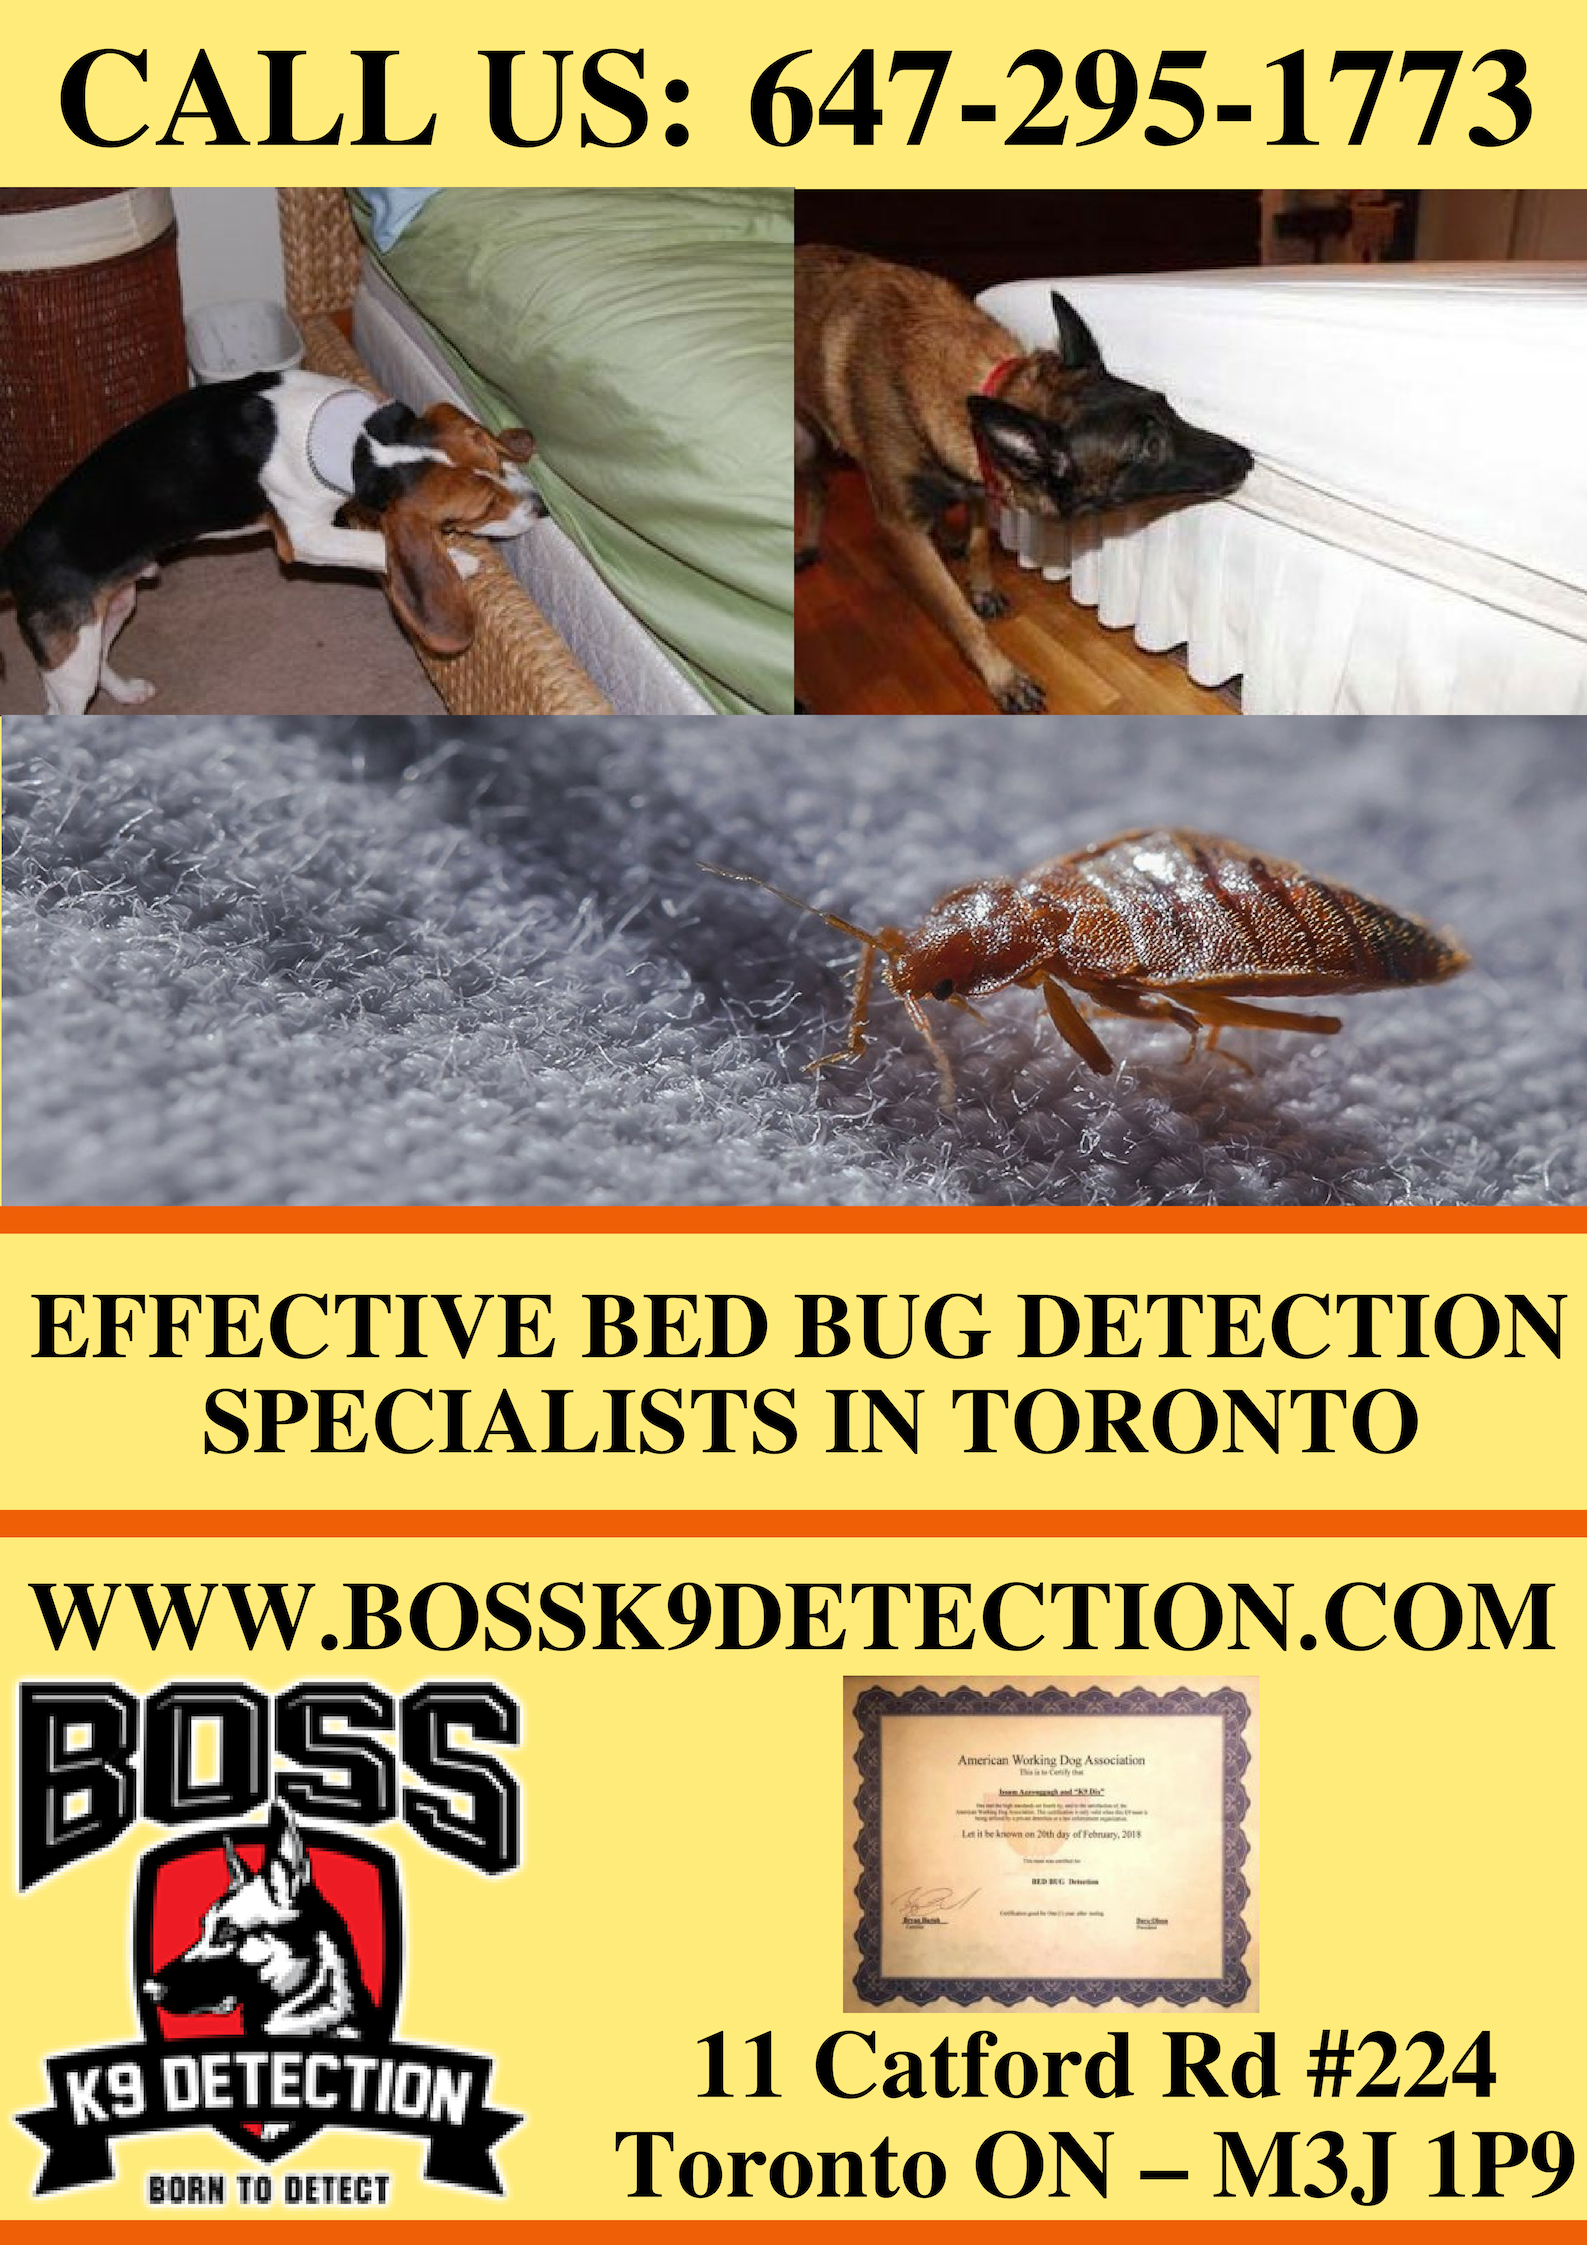 Looking for Effective Bed Bug Detection Specialists in